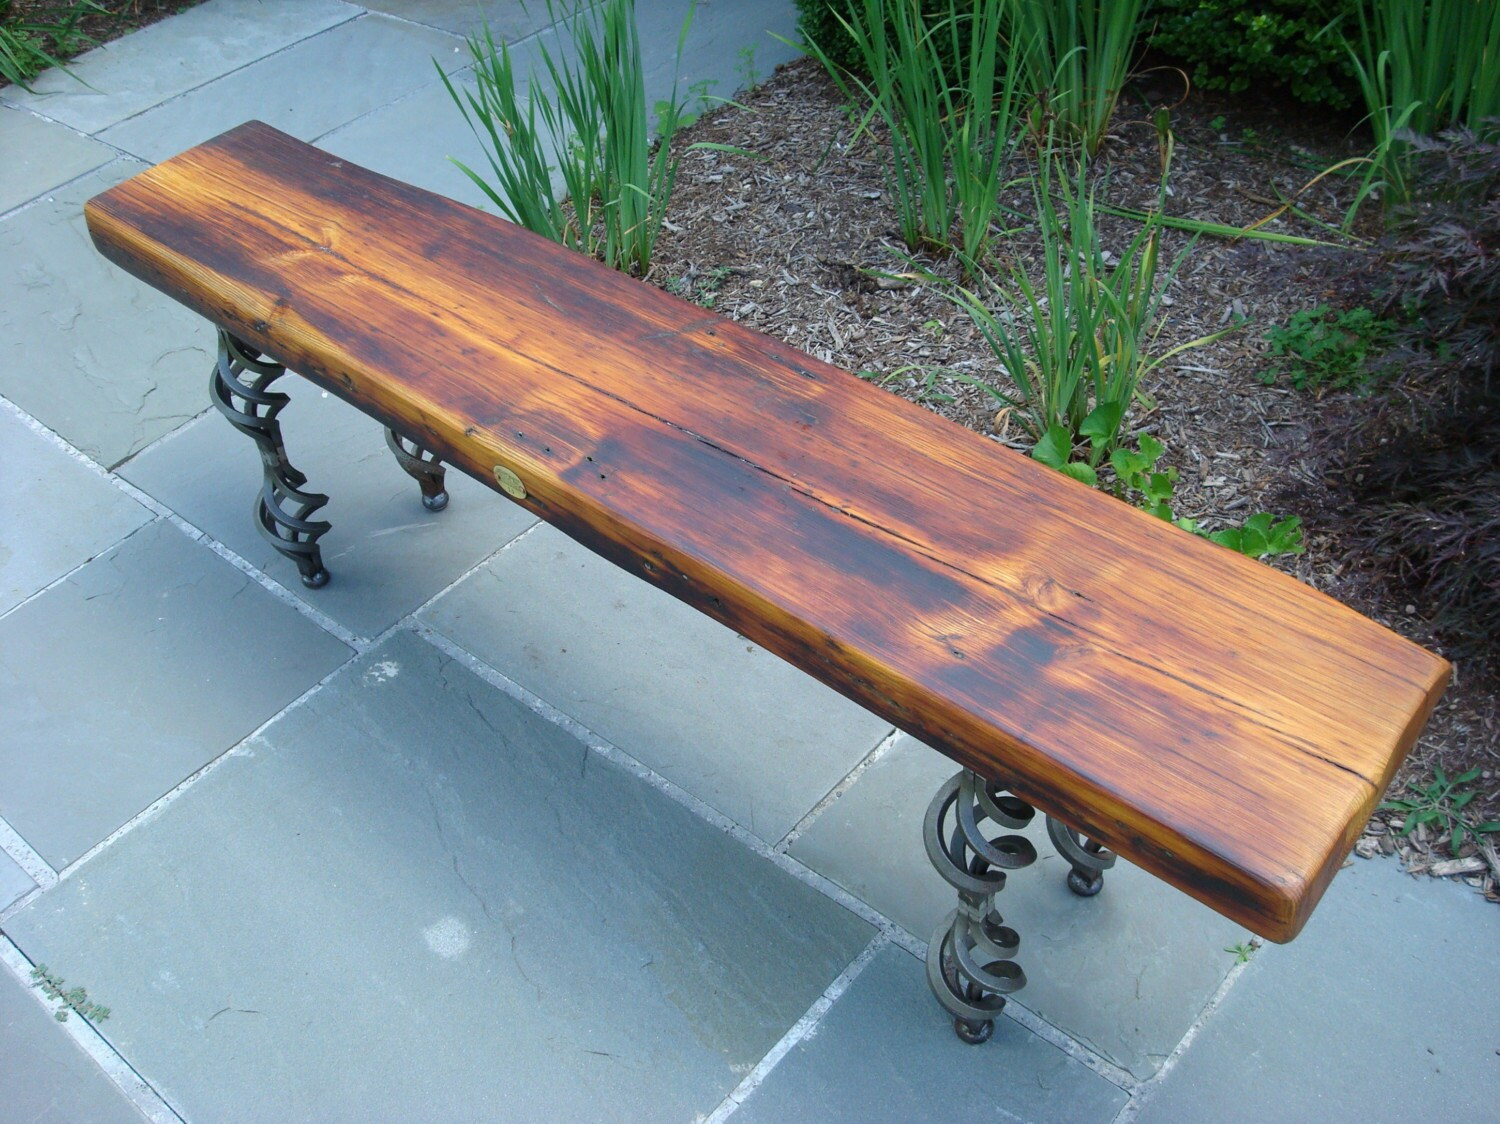 Reclaimed wood bench/coffee table with steel base by surthrival